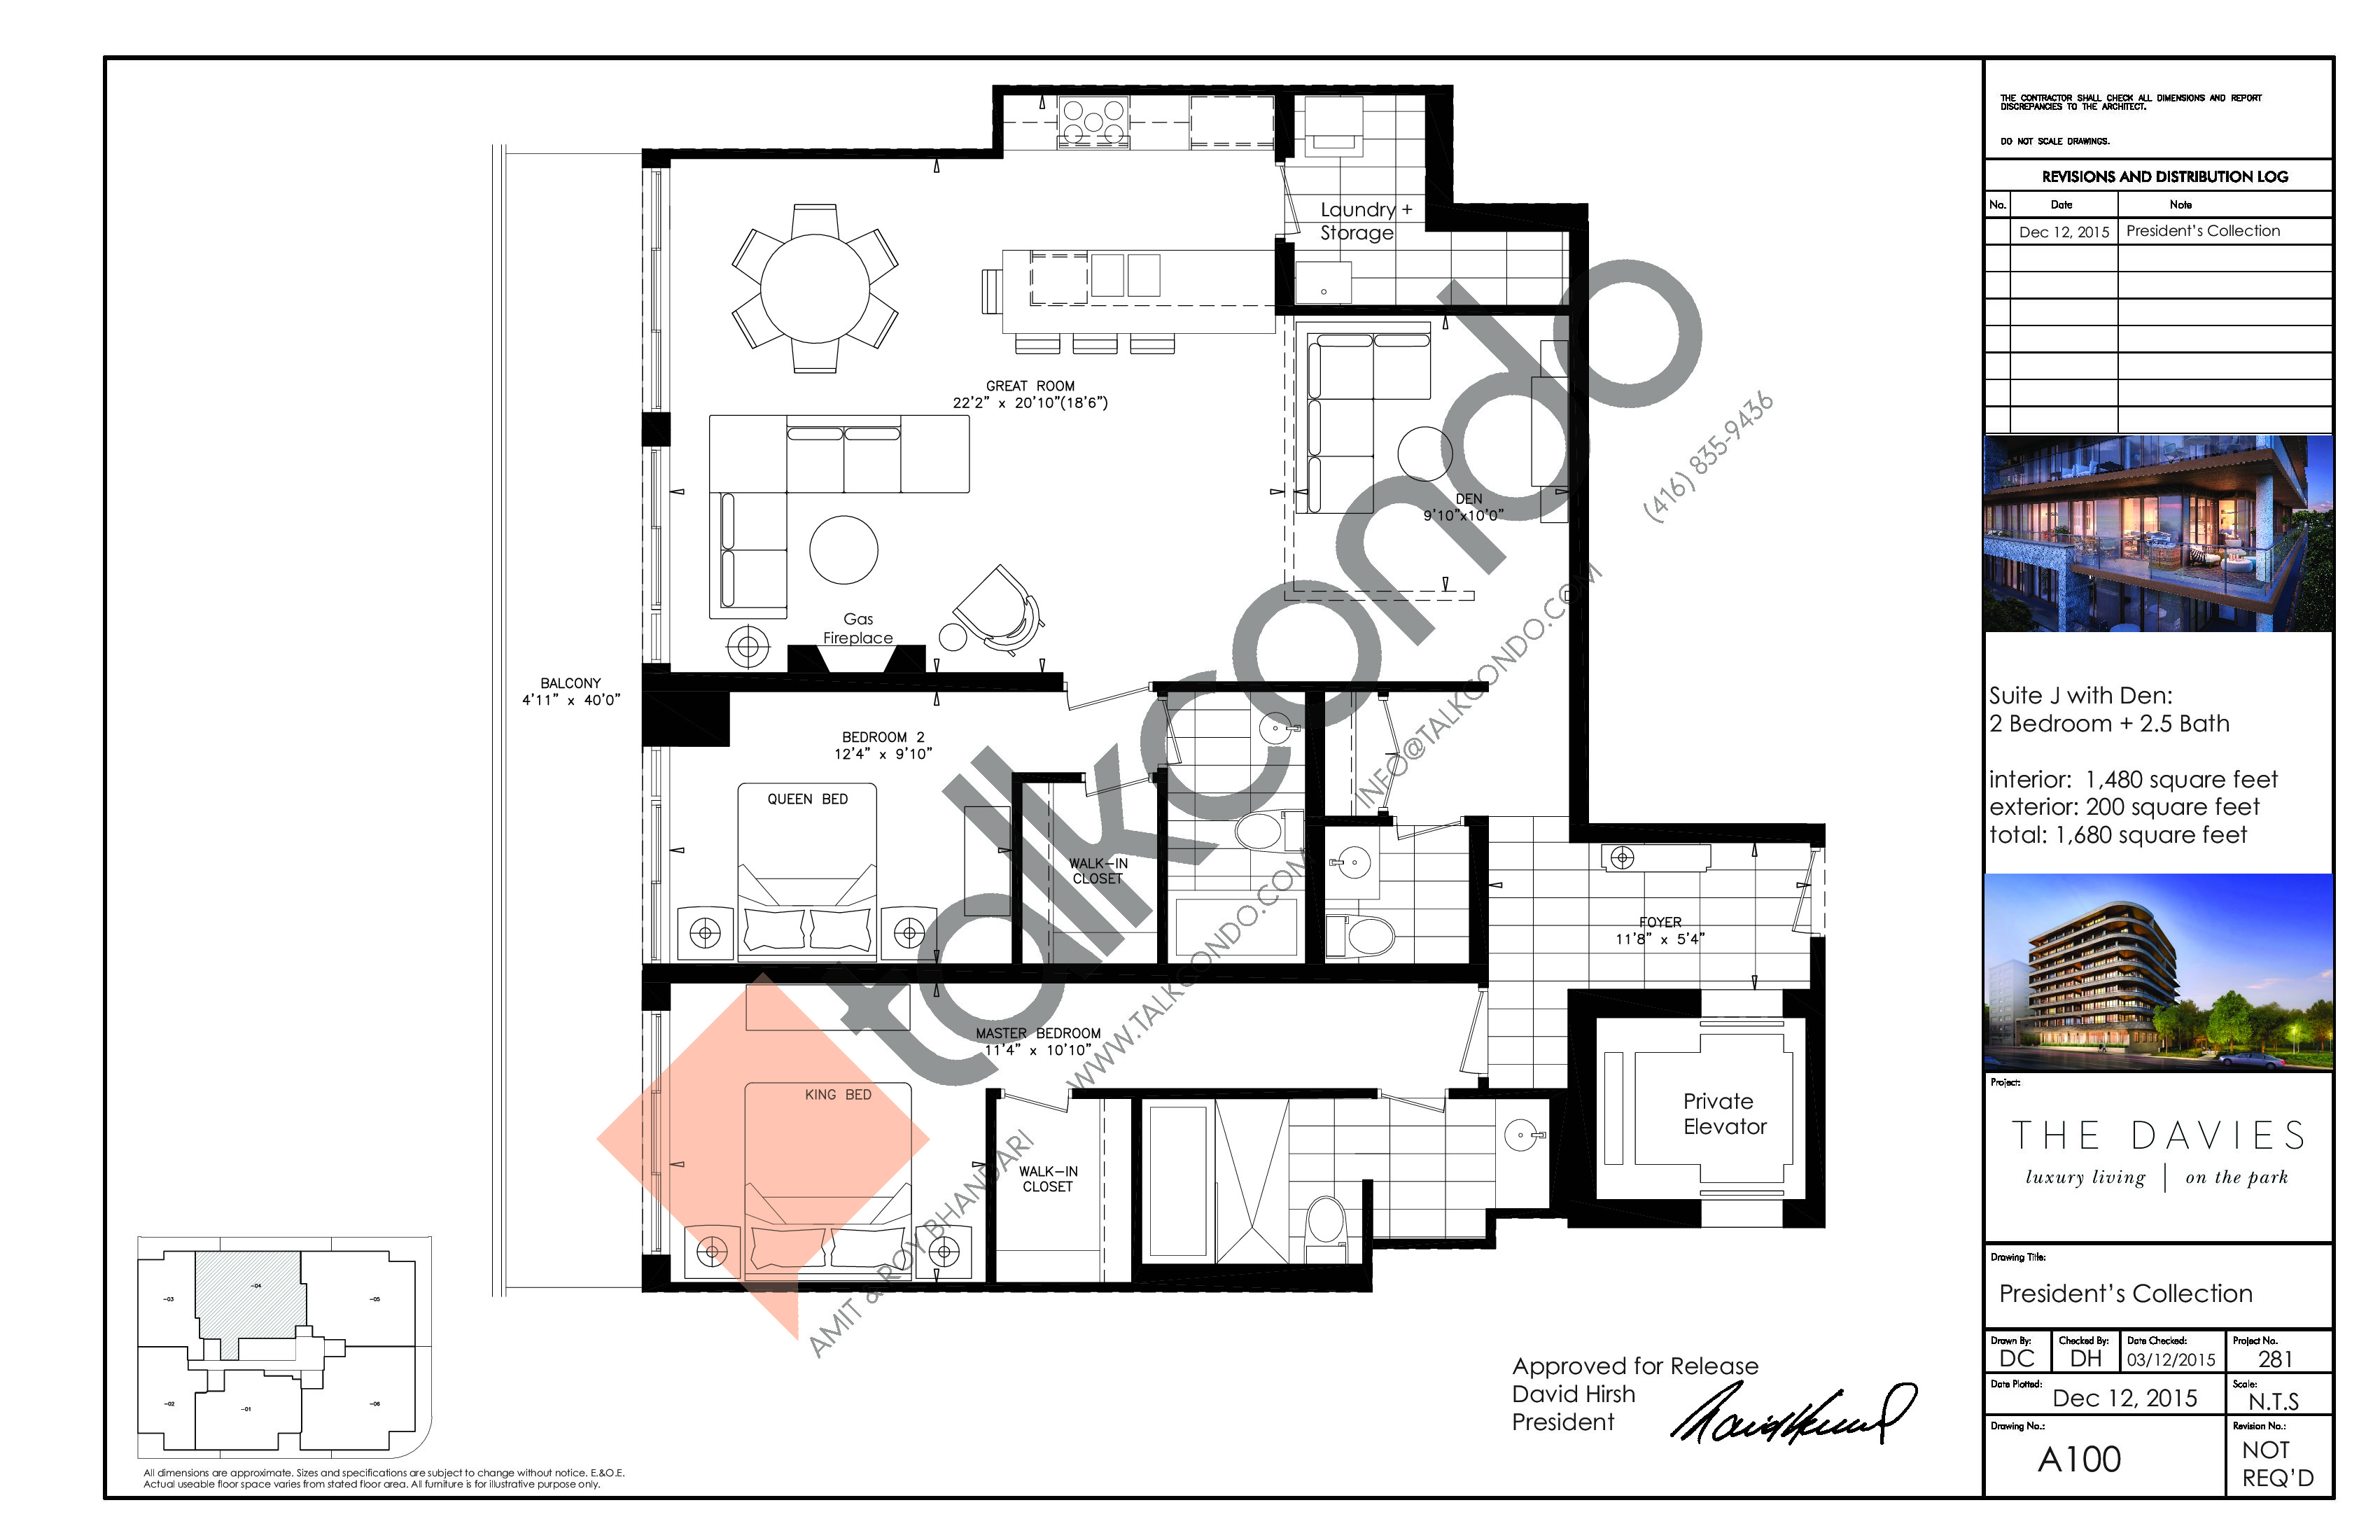 Suite J with Den Floor Plan at The Davies - 1480 sq.ft